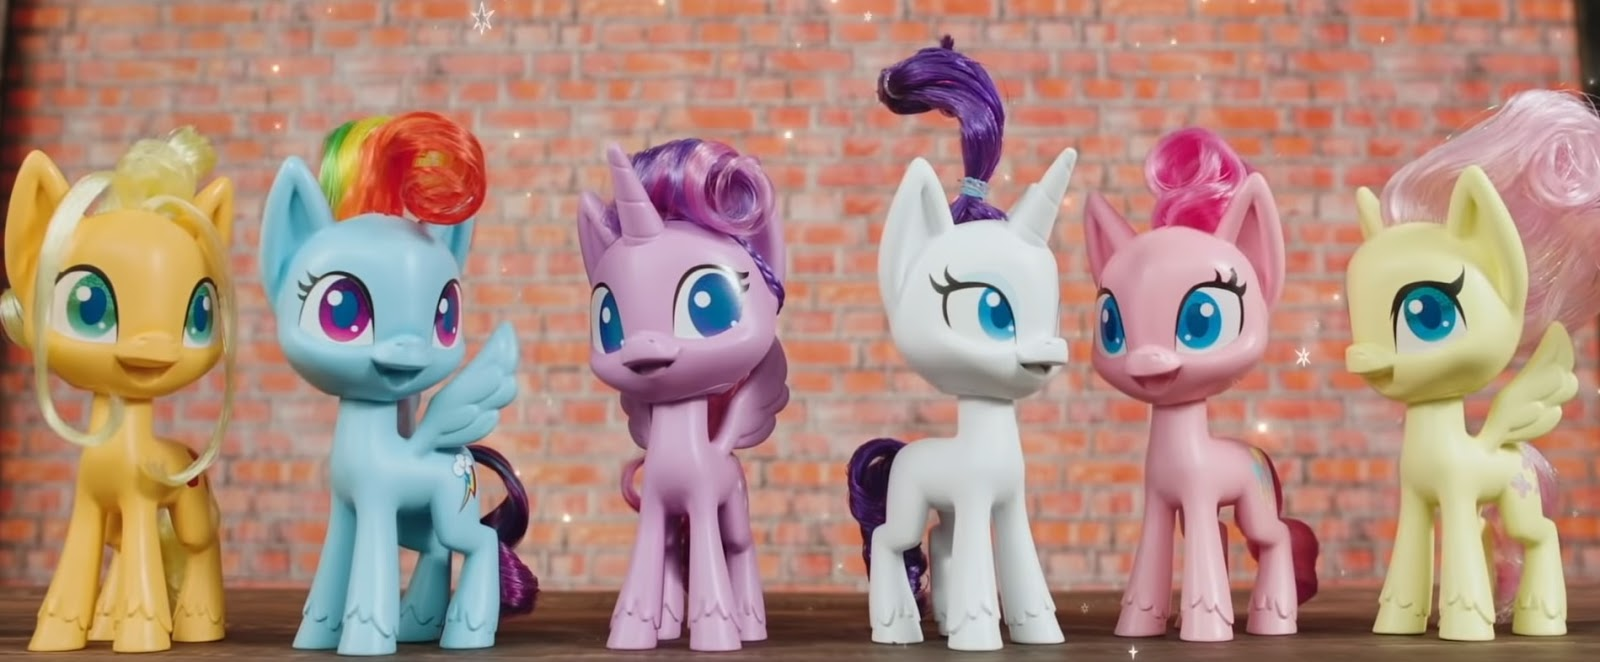 My Little Pony: Pony Life Series Coming 2020 - Product ...